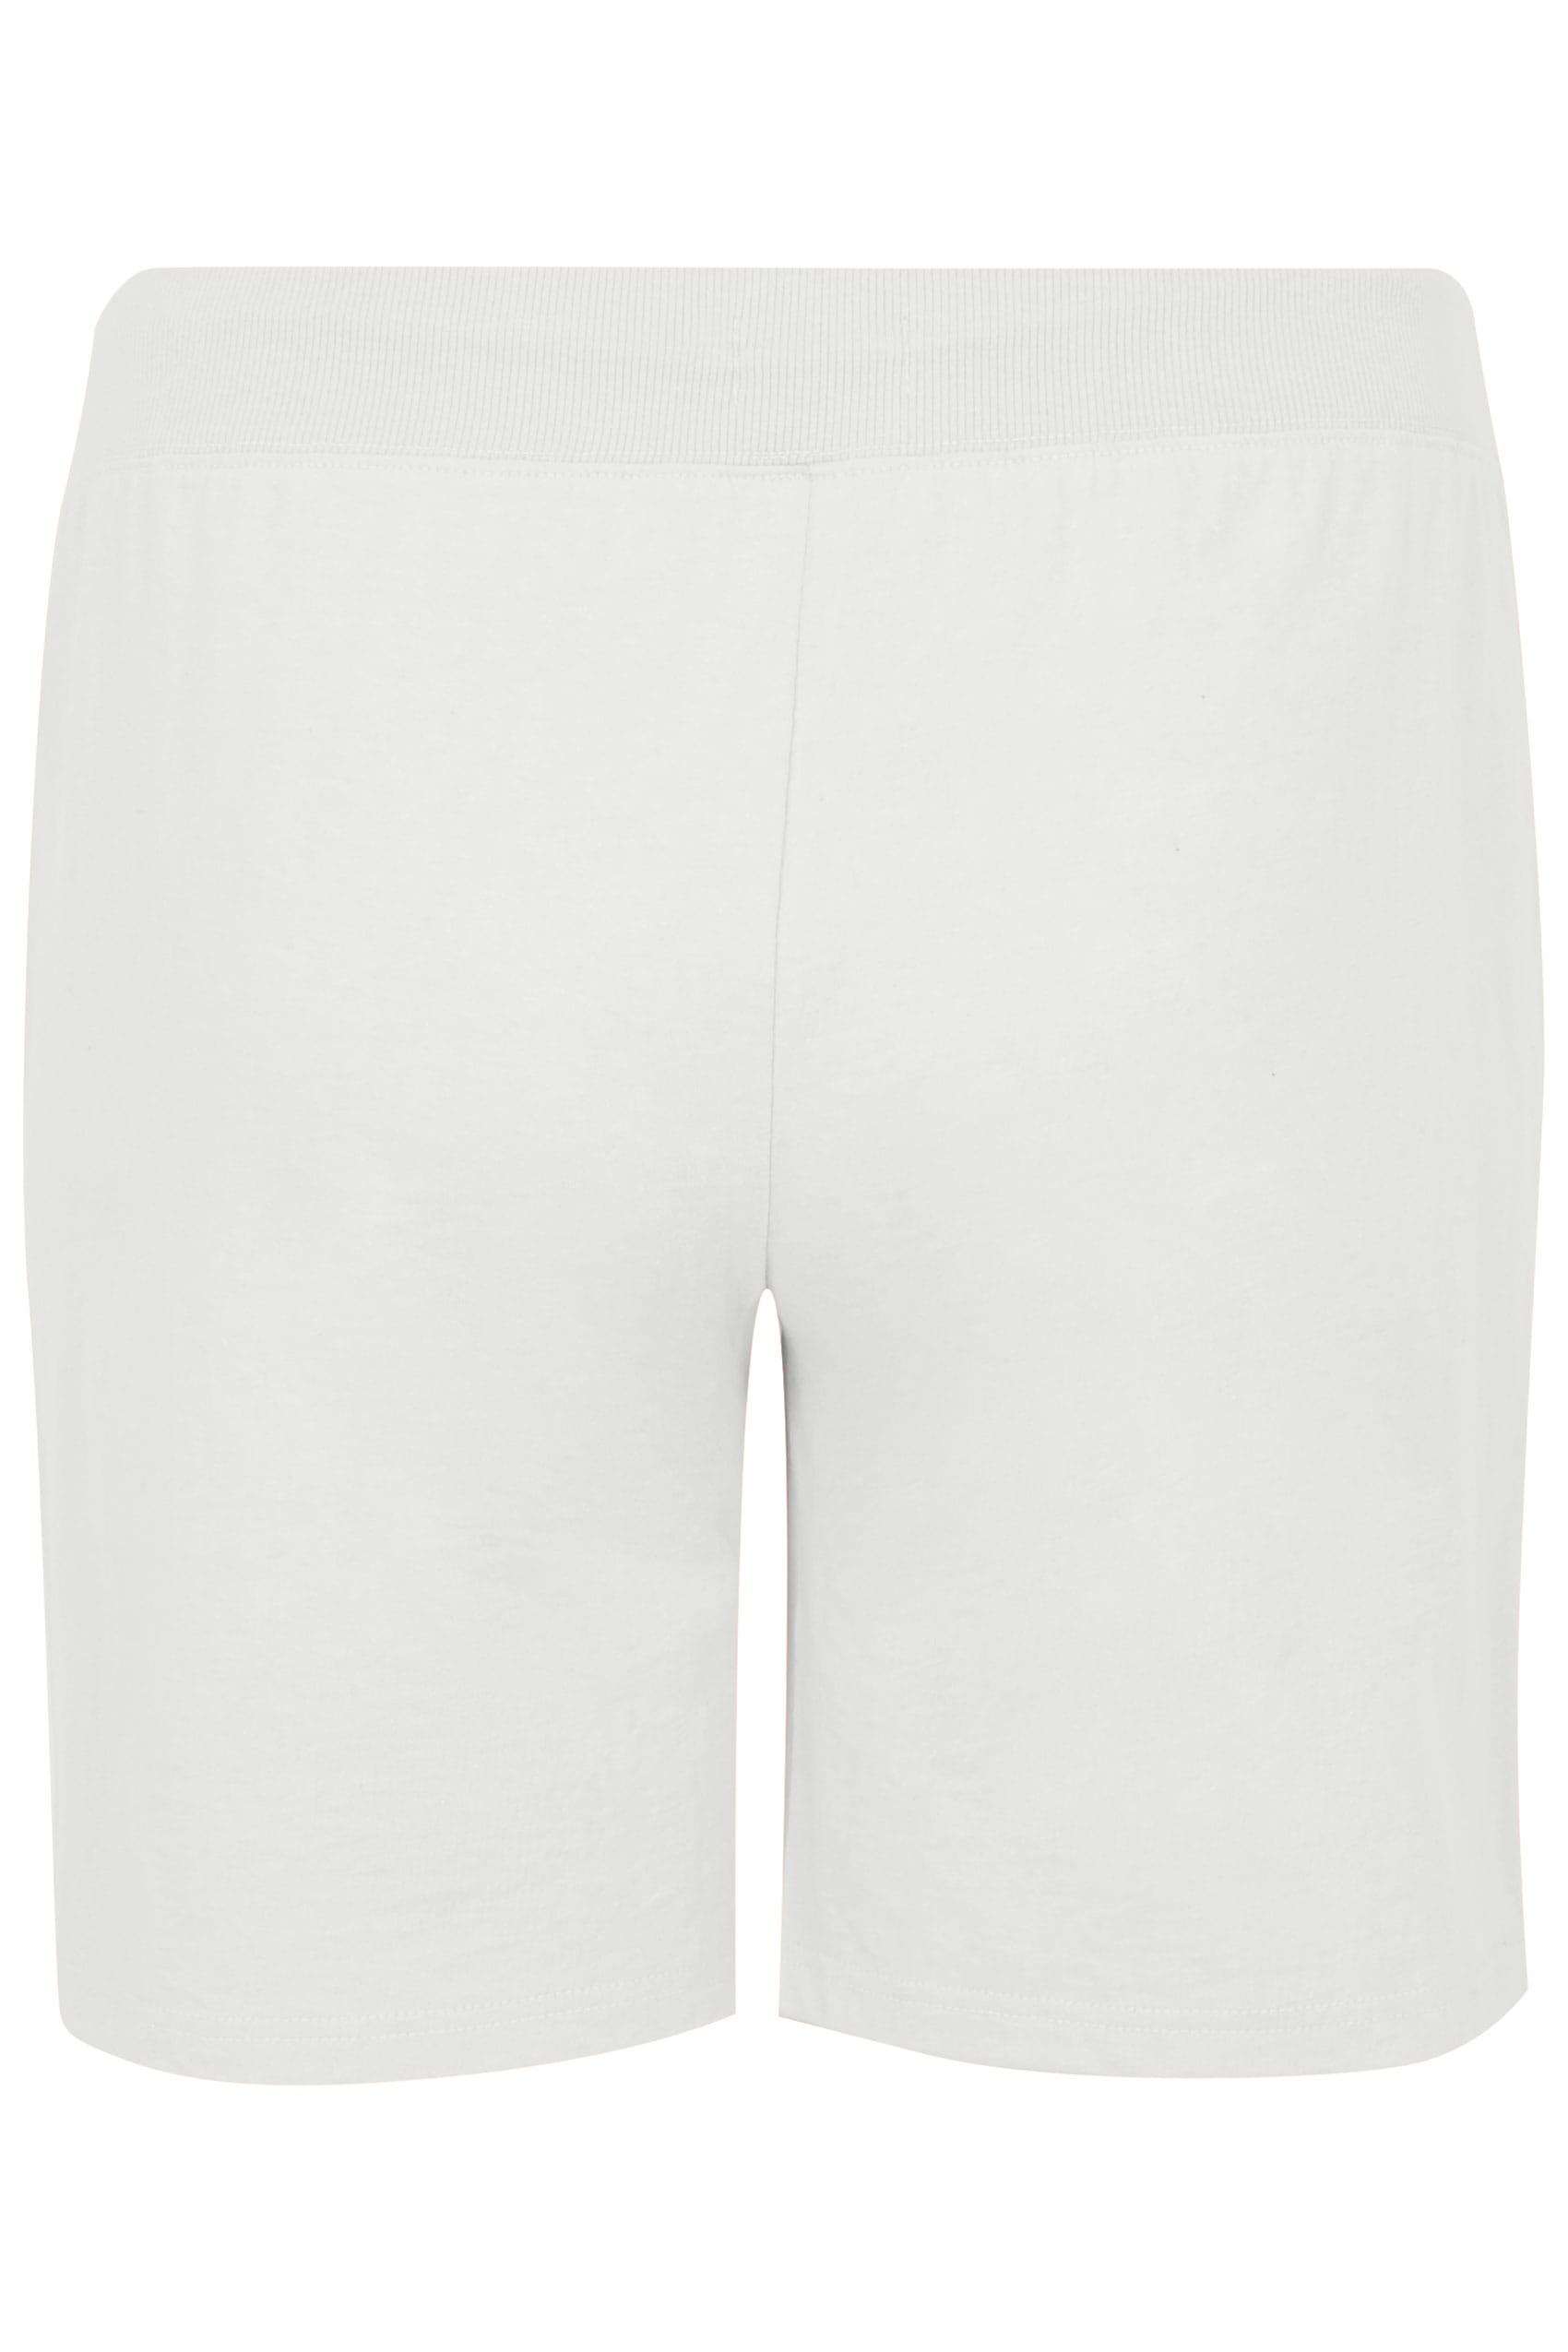 how to head a letter white jersey shorts with elasticated waistband plus size 40372